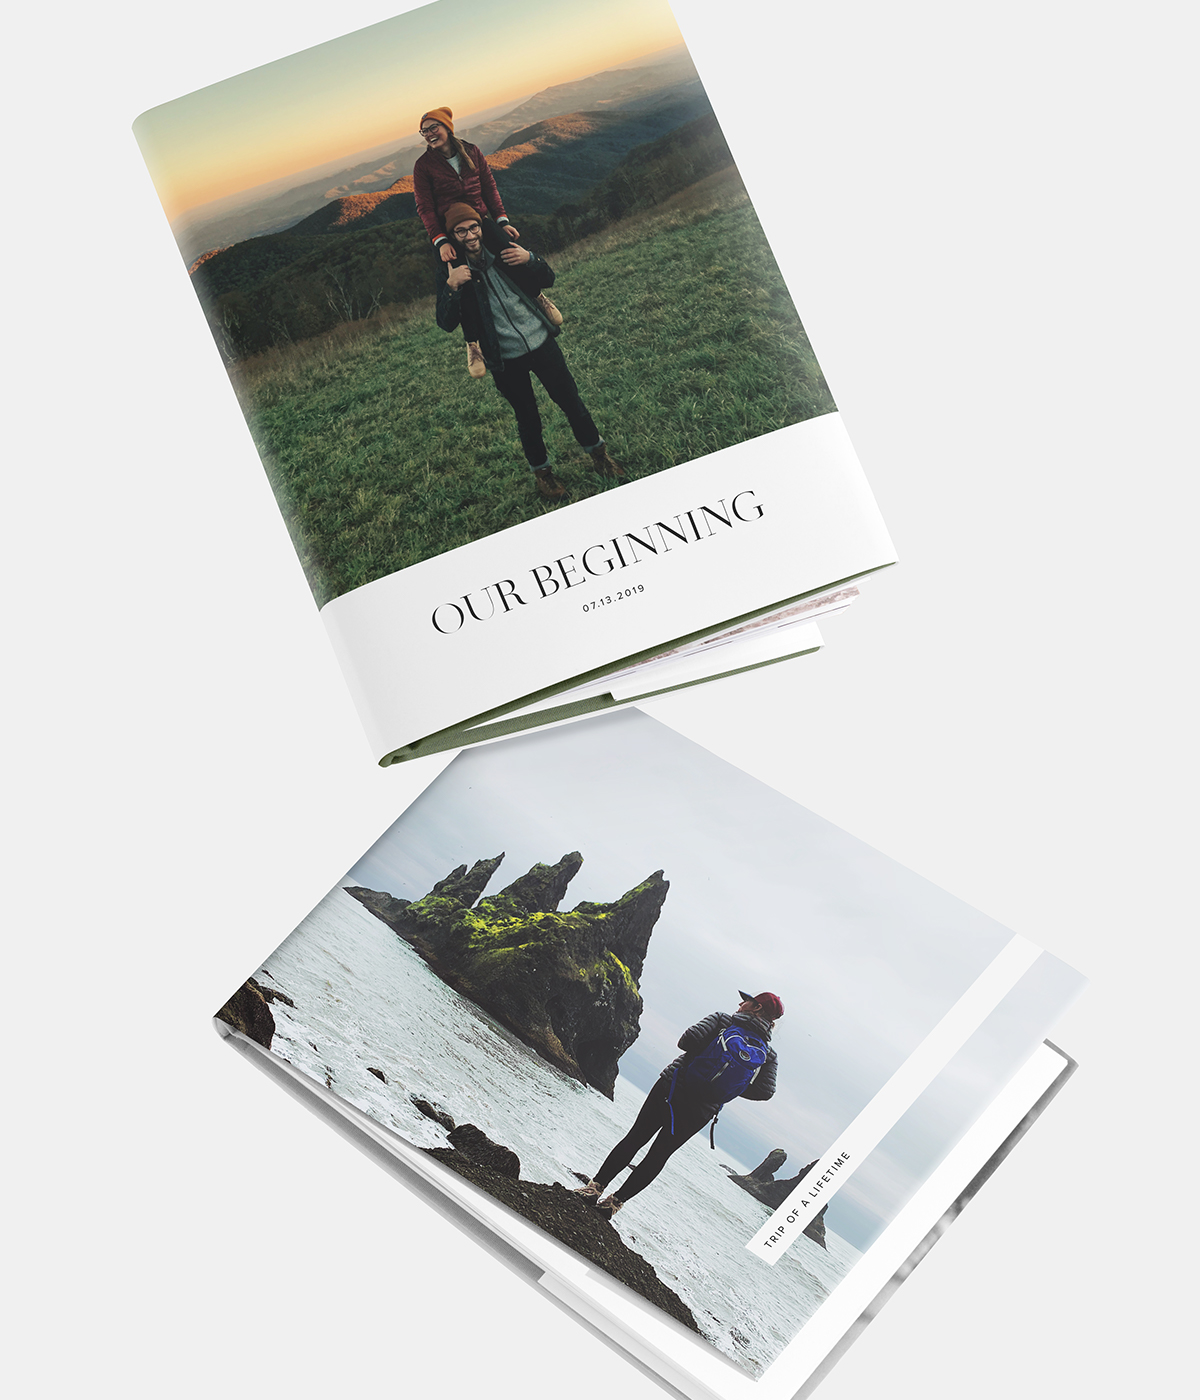 Two different cover designs available for the hardcover photo book